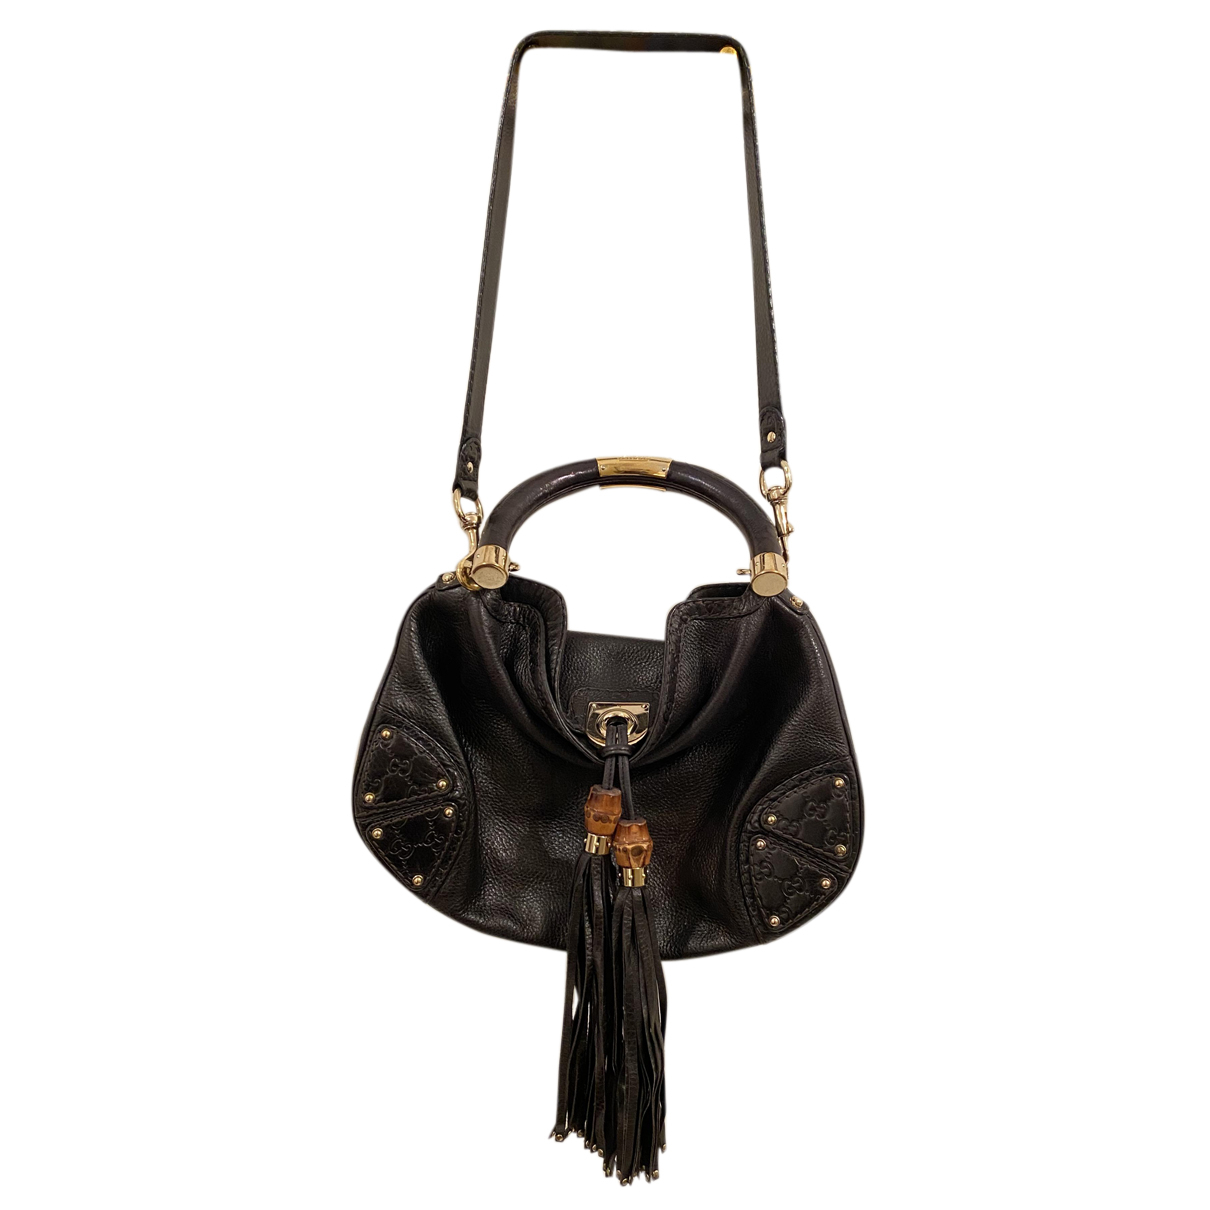 Gucci Indy Black Leather handbag for Women N